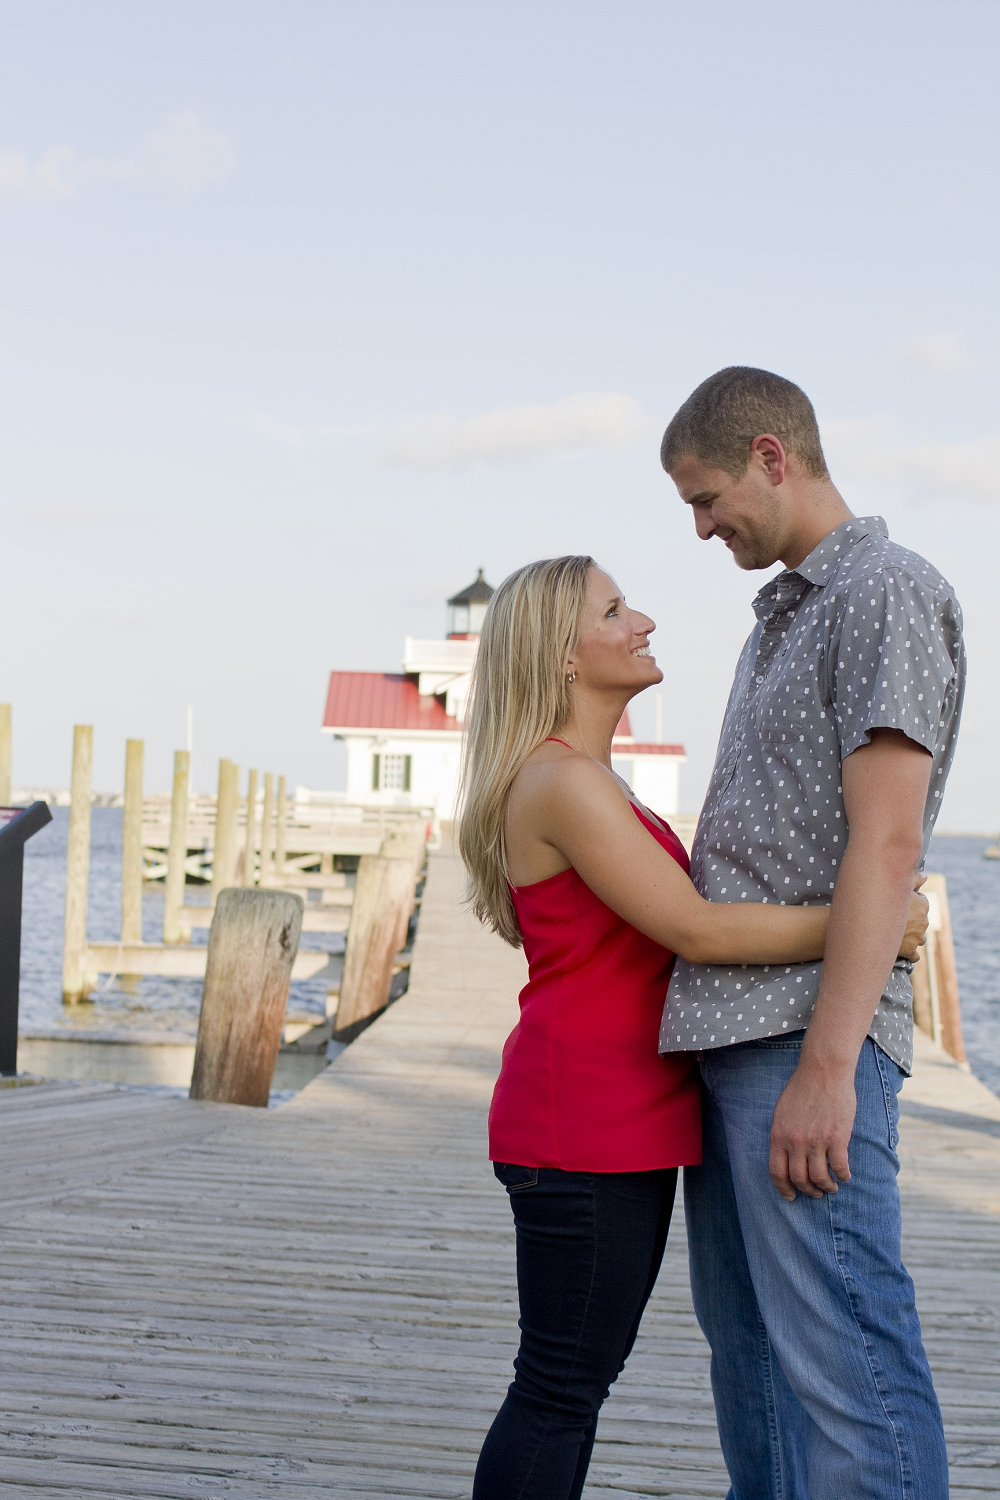 outer-banks-nags-head-engagement-photos-09.jpg